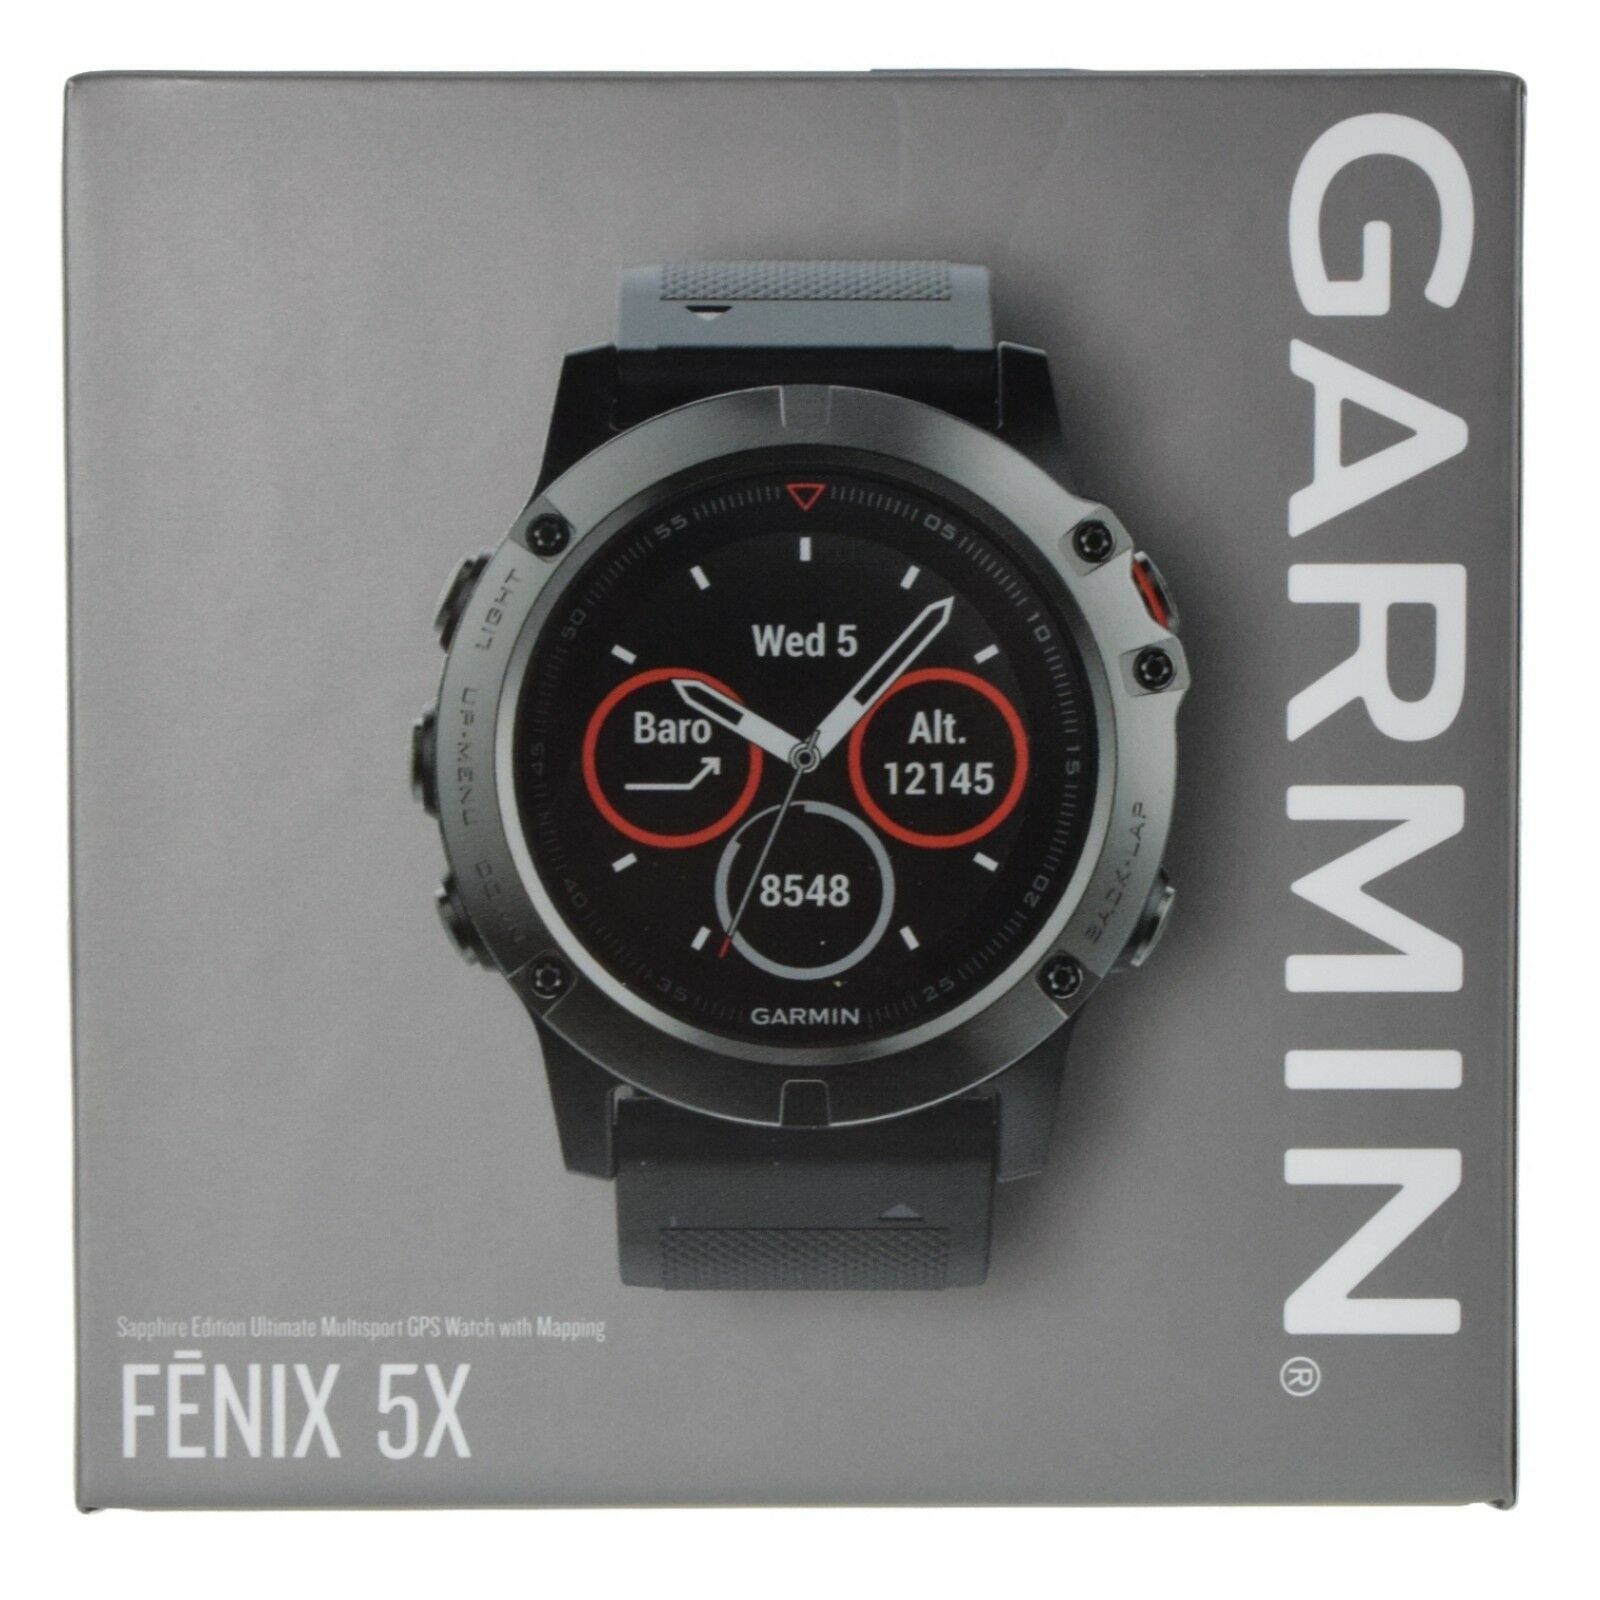 fenix mapping hr watch slate inflowcomponent cancel gps wrist with black sapphire s global content garmin res inflow gray p